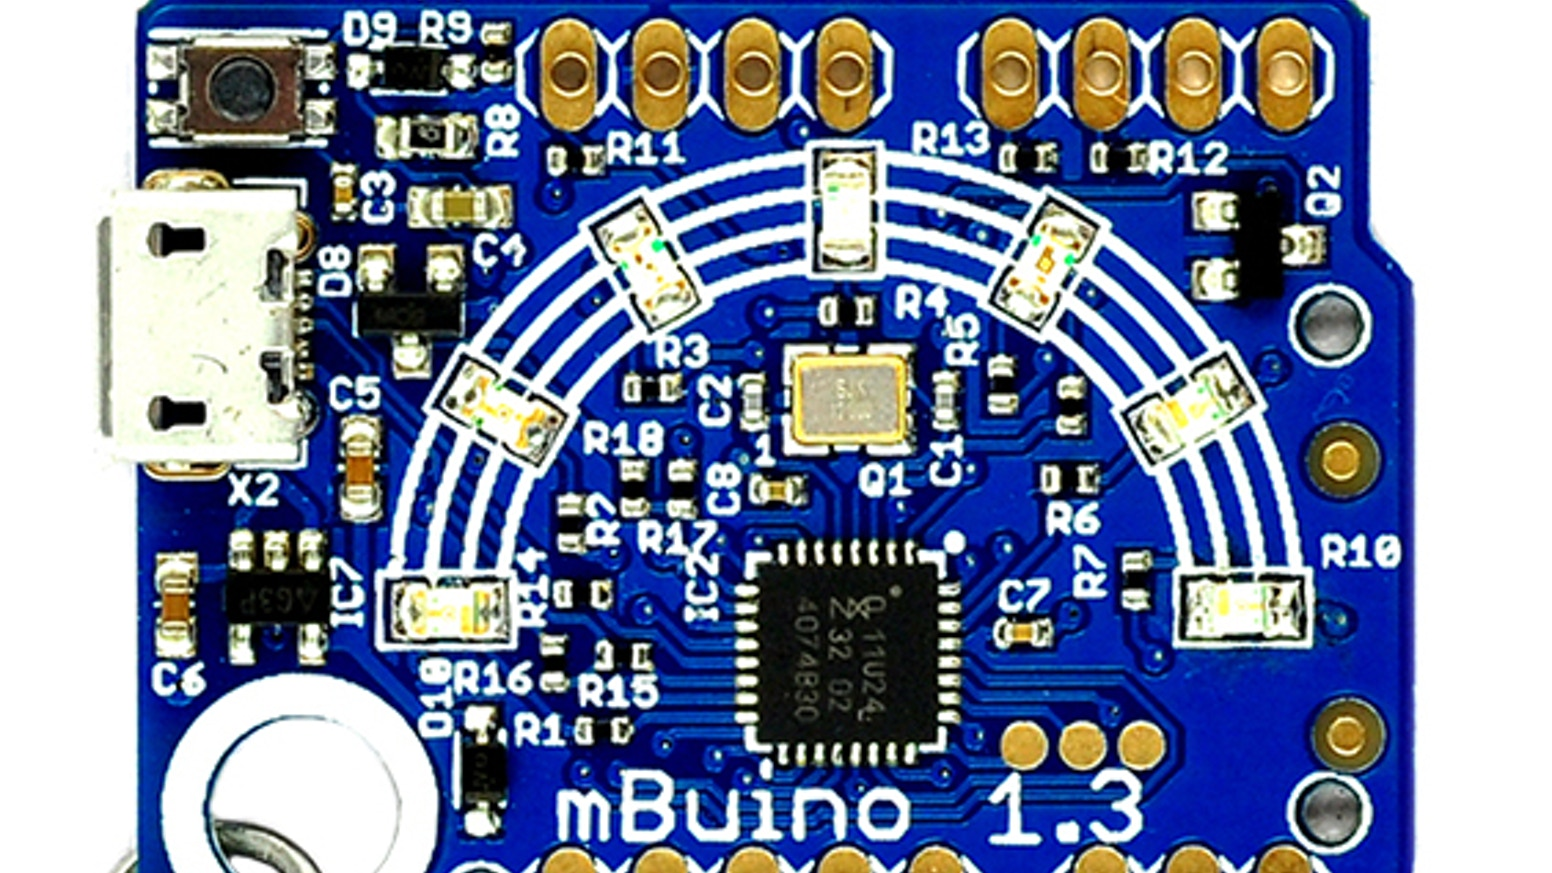 Mbuino A Programmable Mbed Keychain By Ghi Electronics